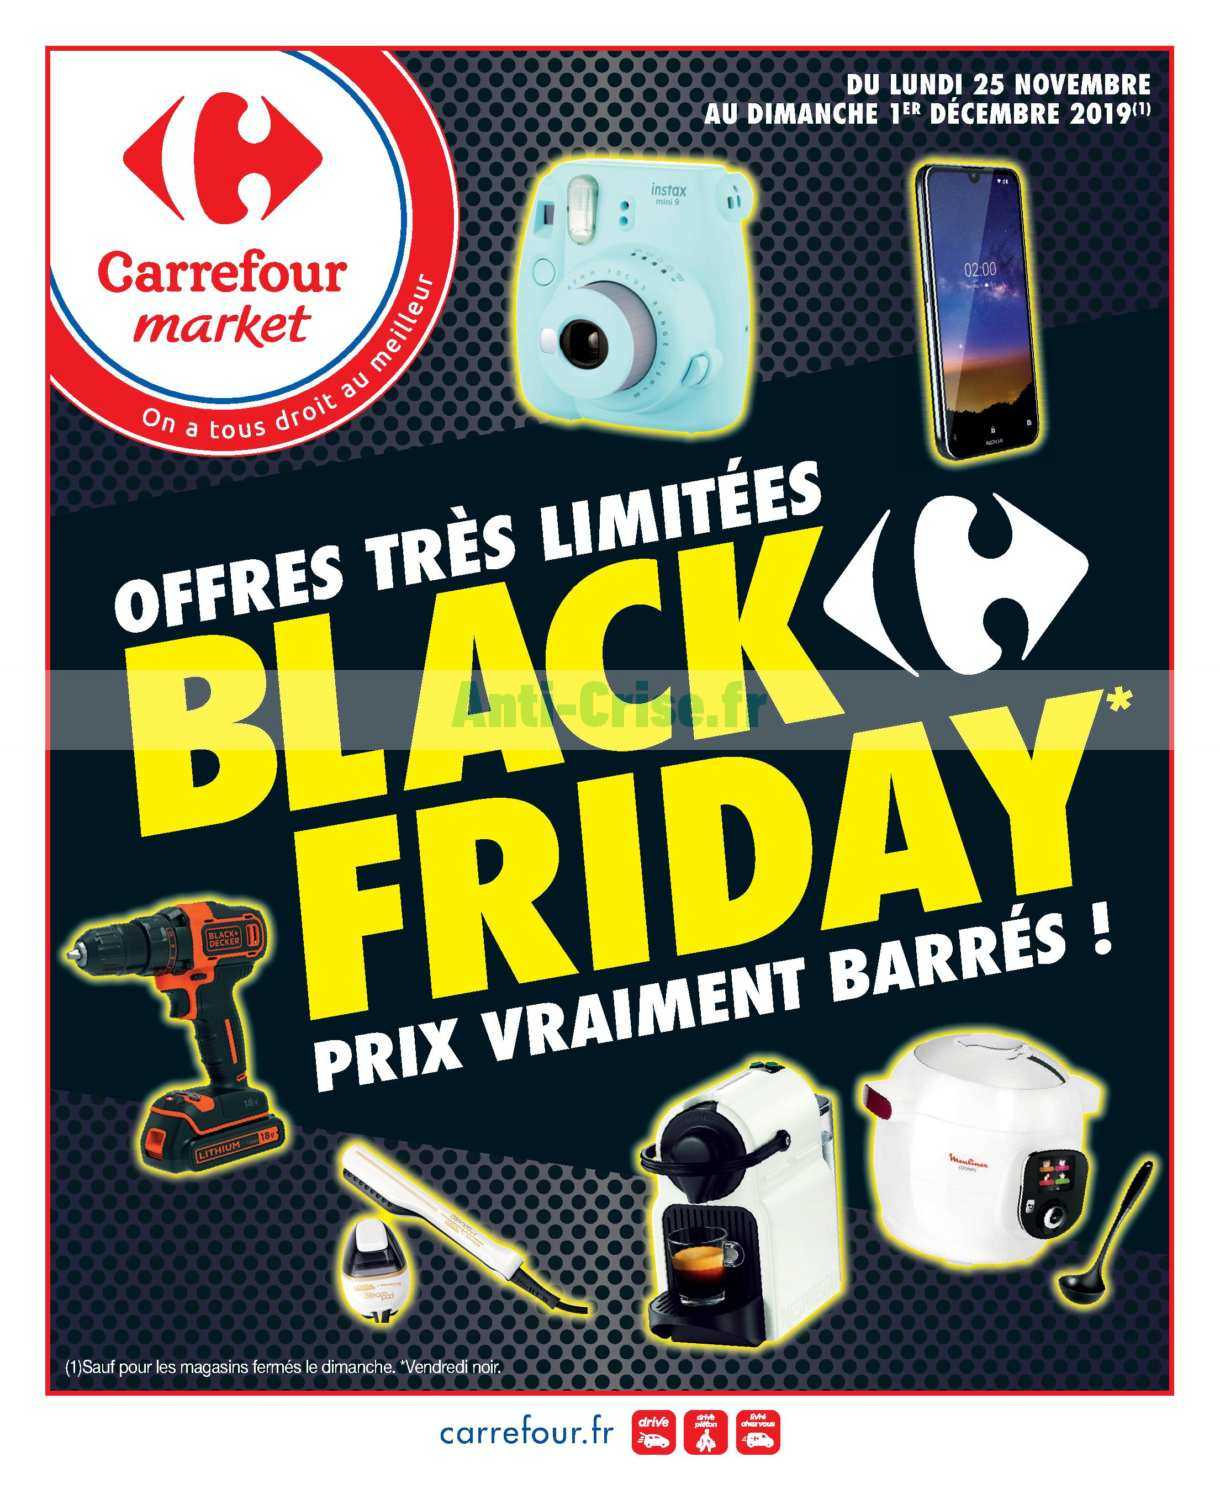 Catalogue Carrefour Market du 25 novembre au 01 décembre 2019 (Black Friday)